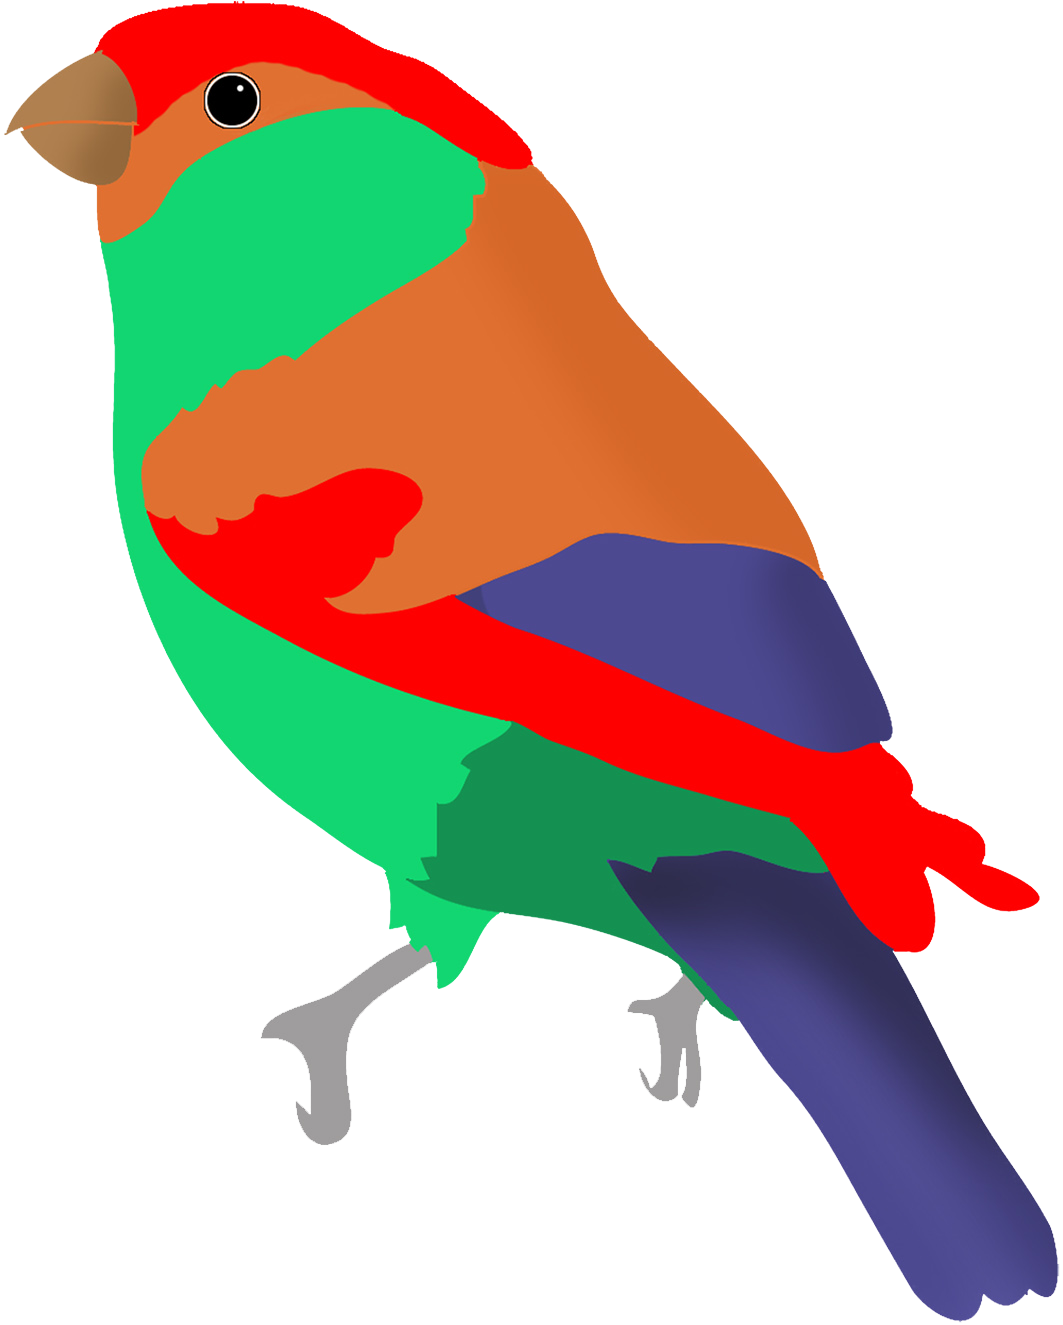 Birds colorful. Drawings of